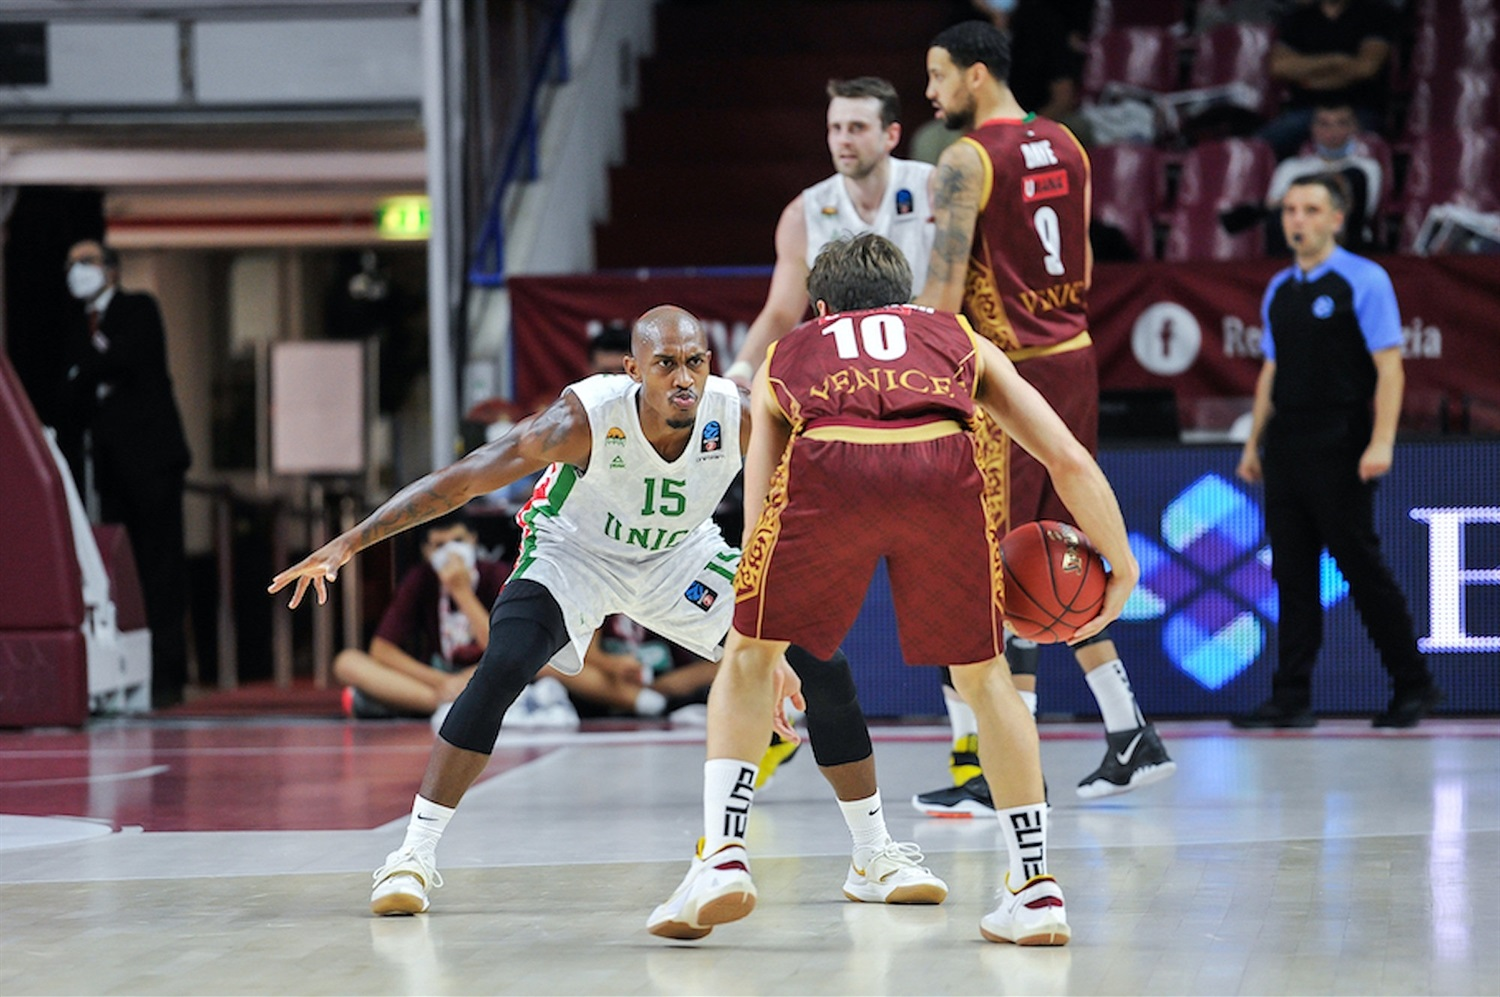 Jamar Smith - UNICS Kazan (photo Reyer) - EC20